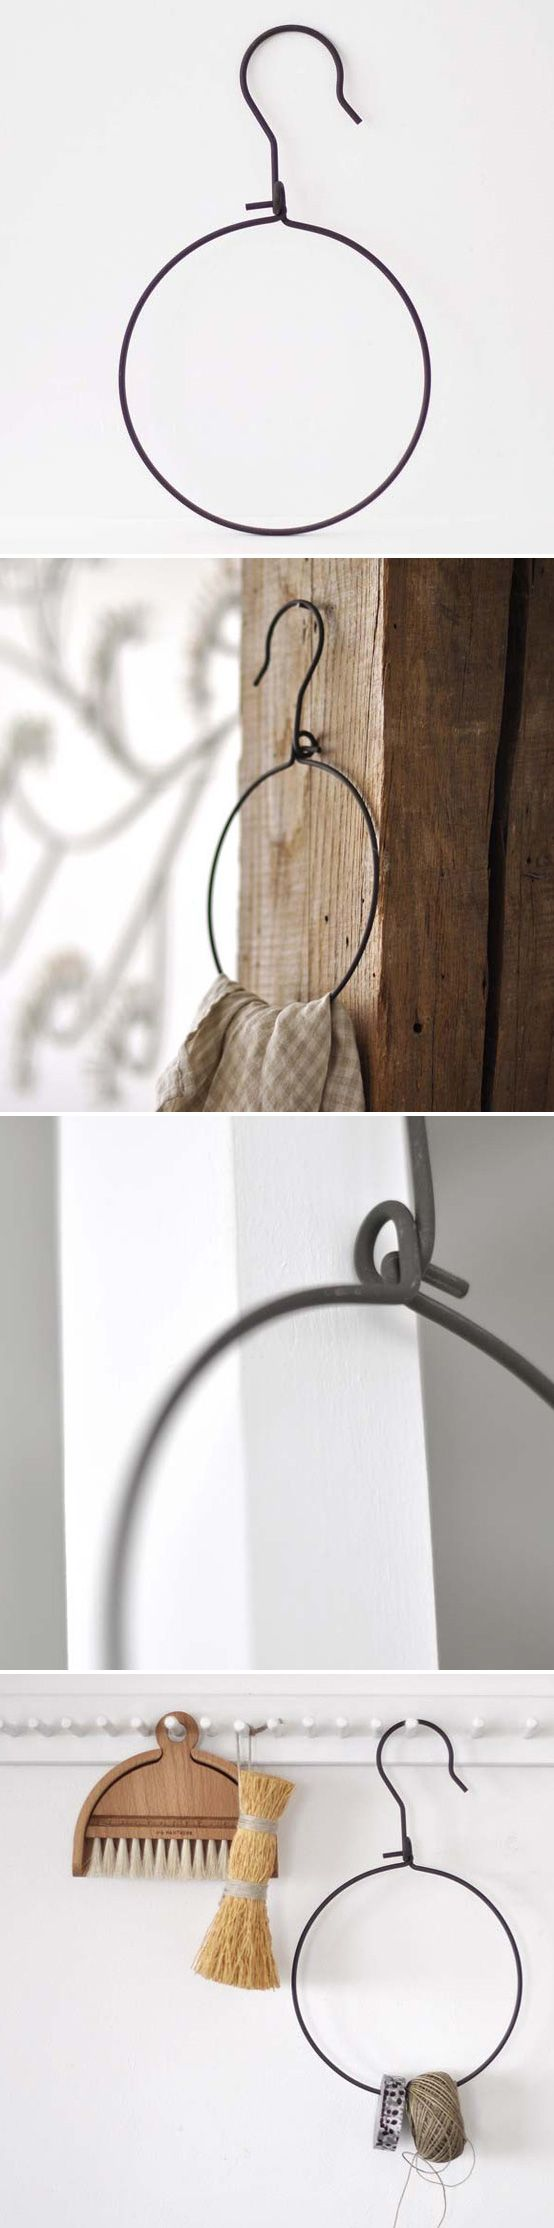 Wire Photo Hanger best 10+ wire coat hangers ideas on pinterest | valentines day